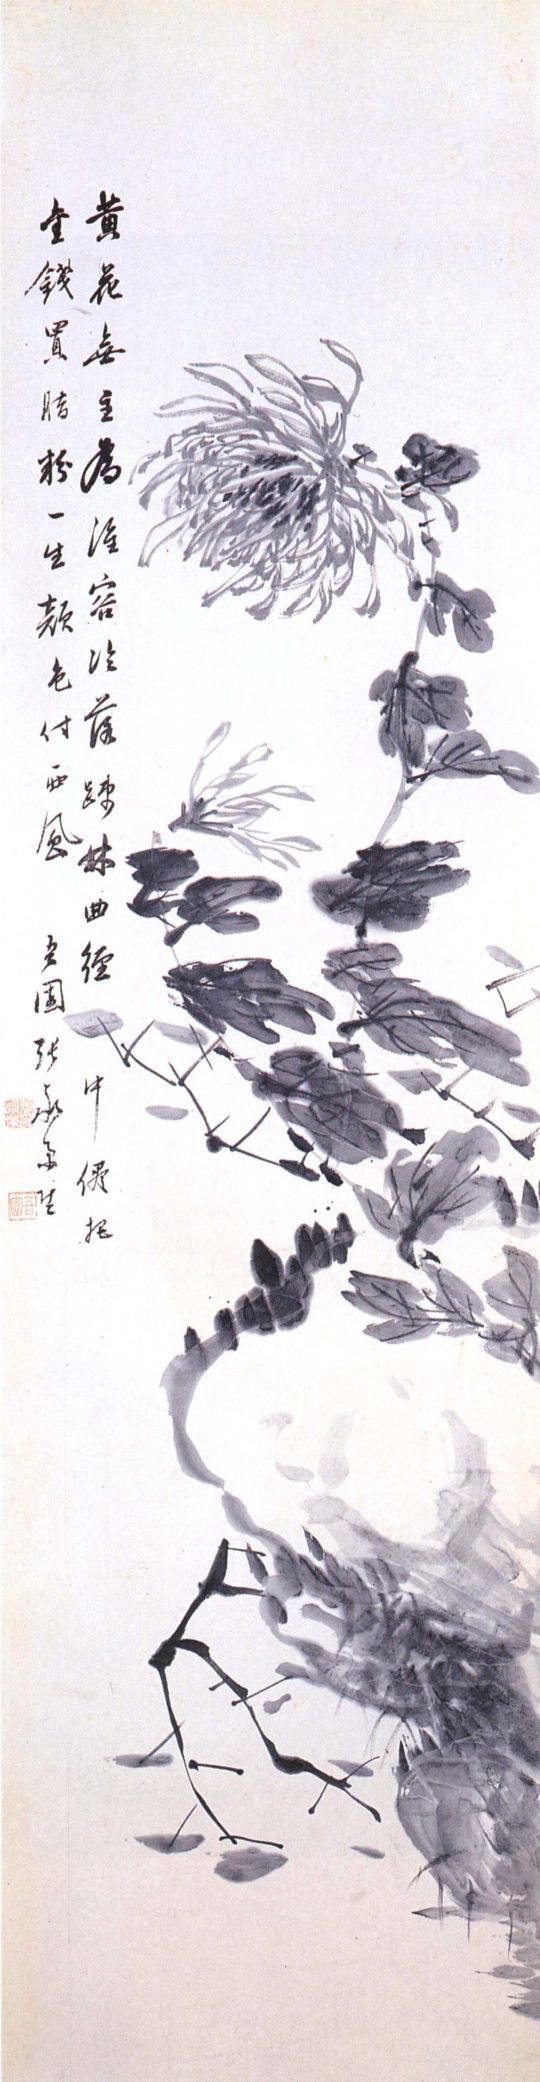 (Korea) Crisanthemum and Stone by Jang Seung-eop (1843-1897). ca 19th century CE. ink on paper.